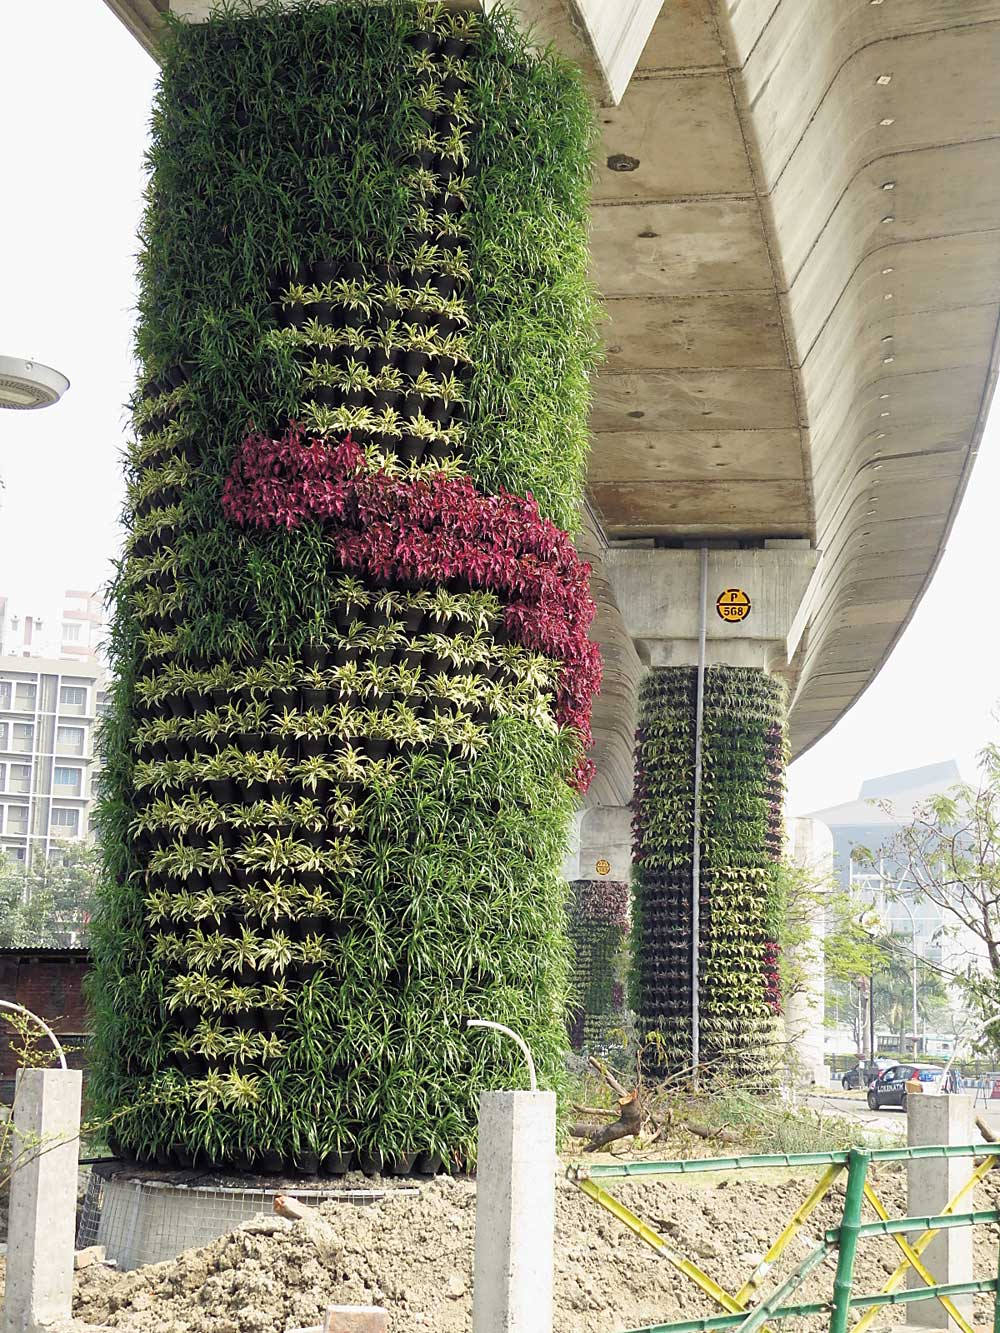 A closer look at the foliage growing on the pillars